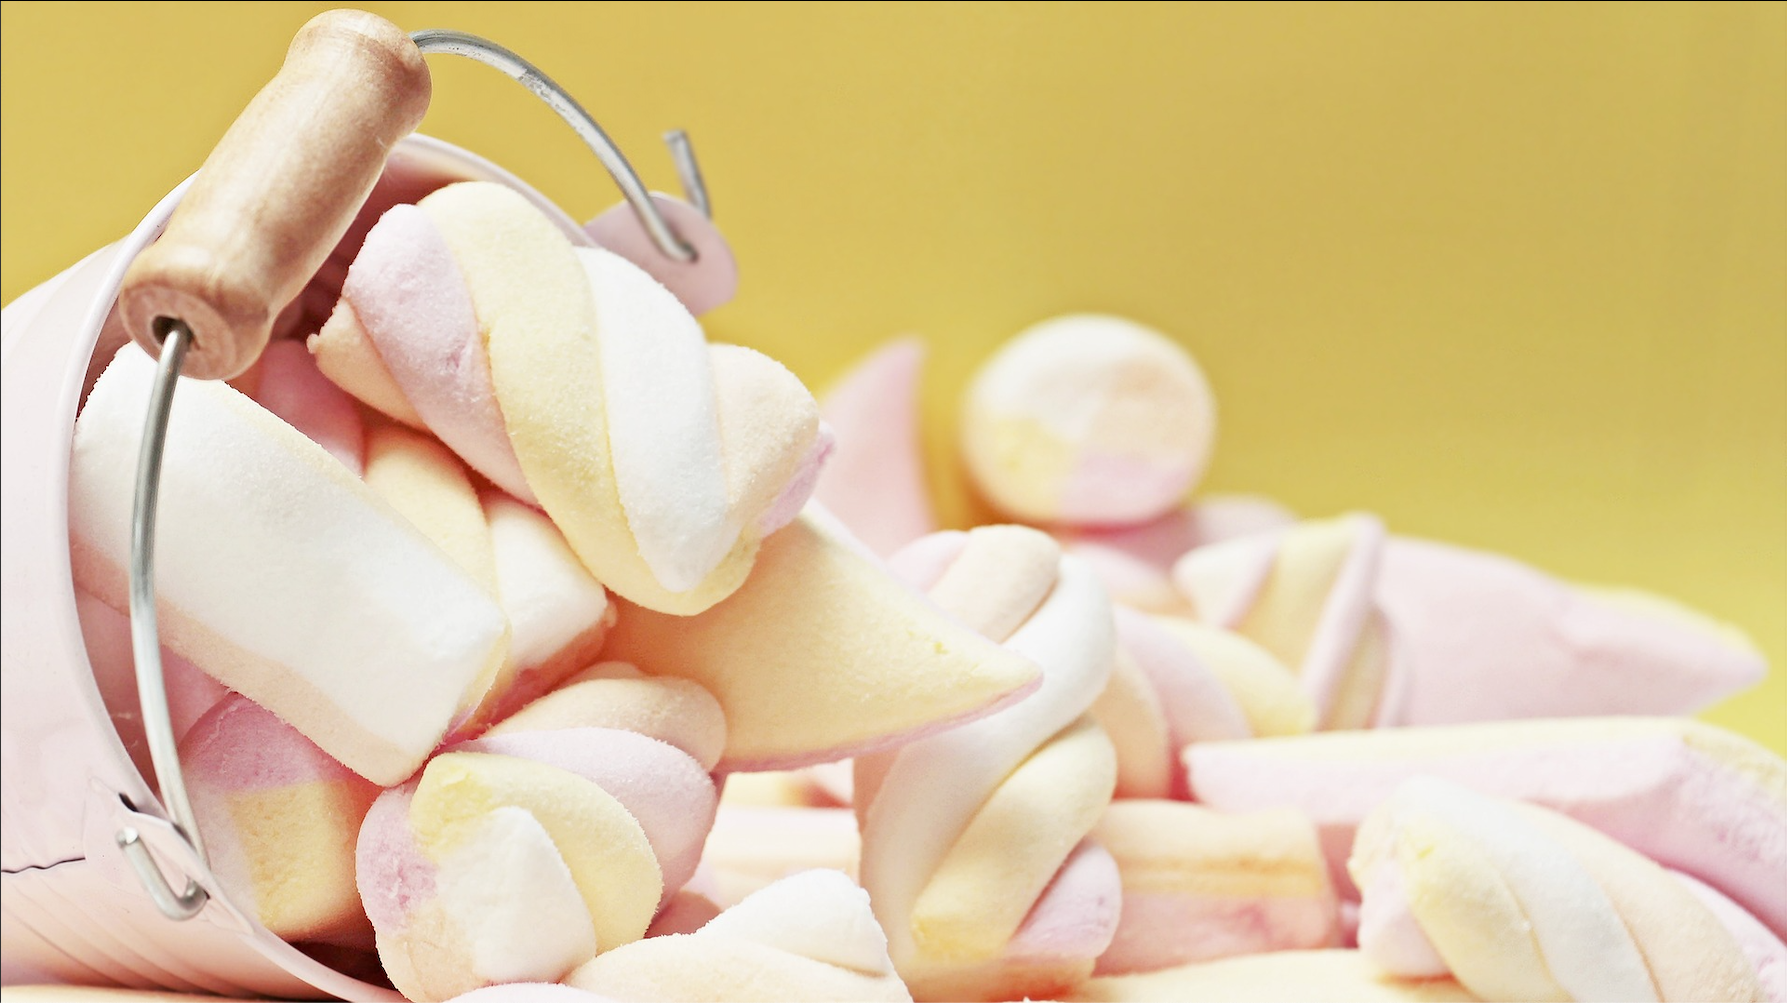 marshmallow experiment delayed gratification self-restrain